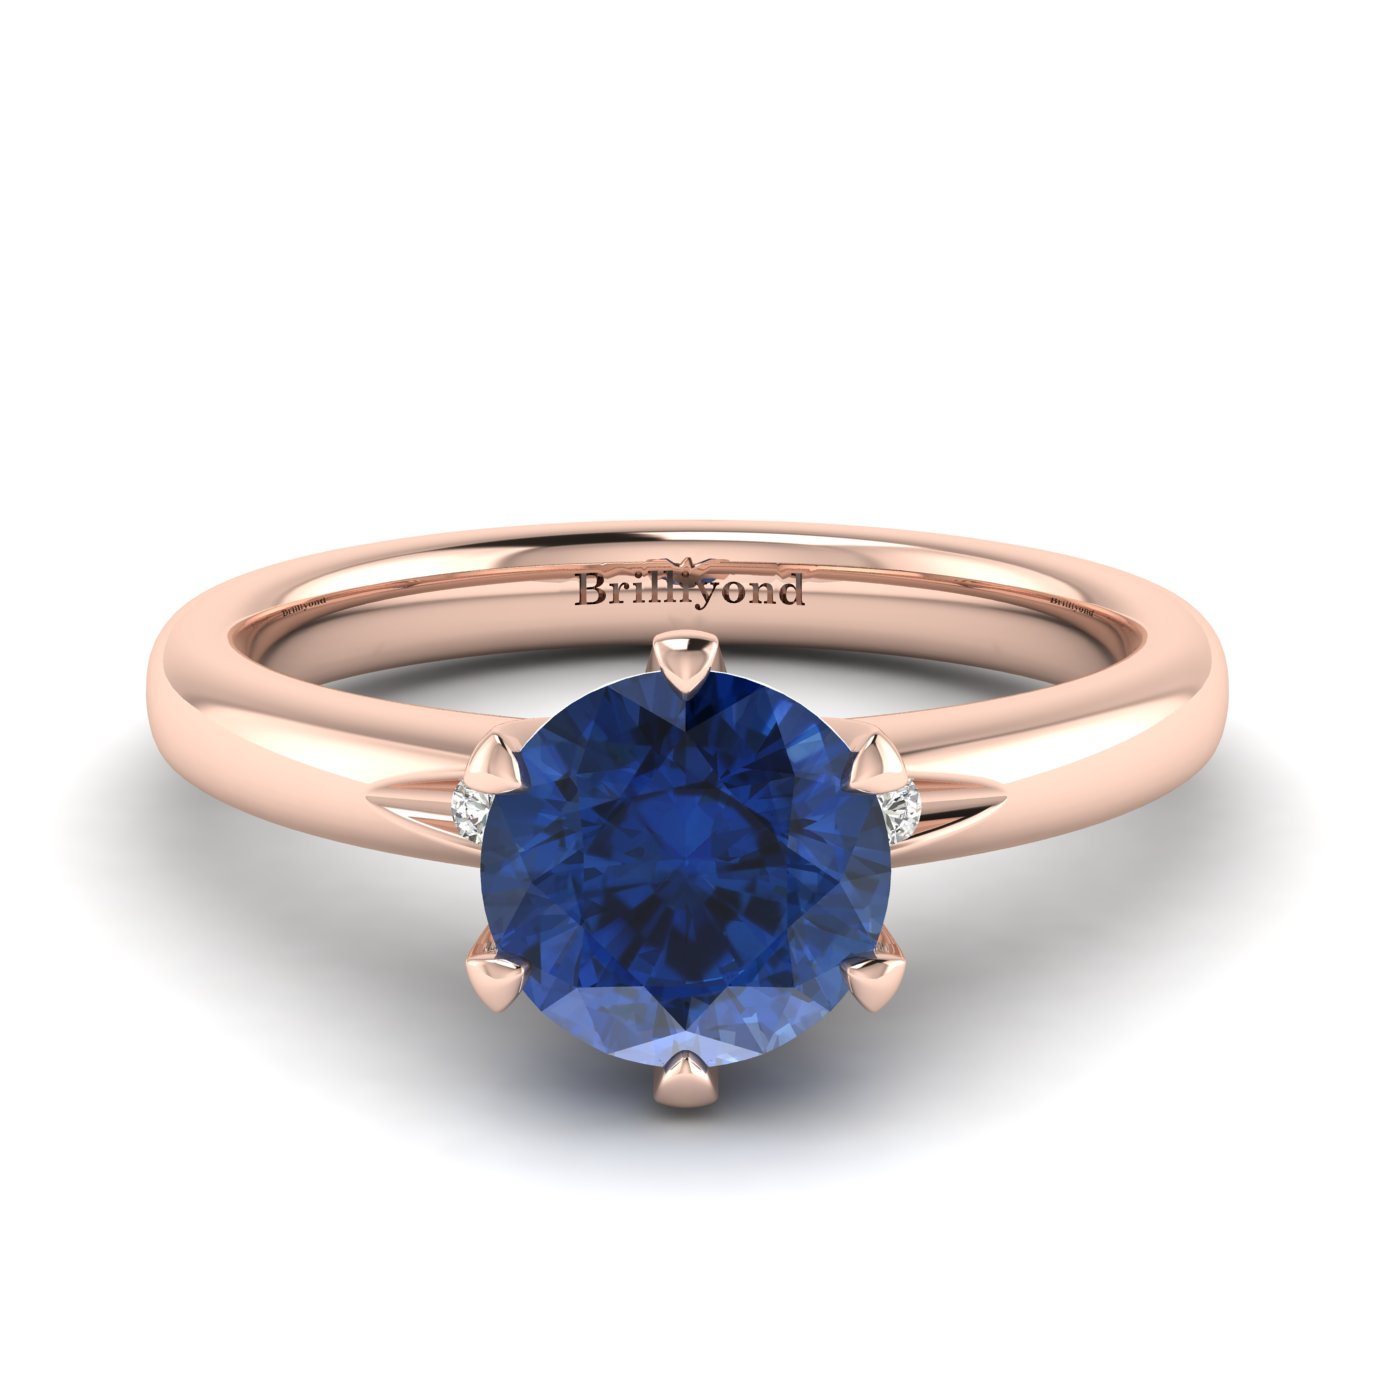 Blue Sapphire Rose Gold Solitaire Engagement Ring Byond_image2